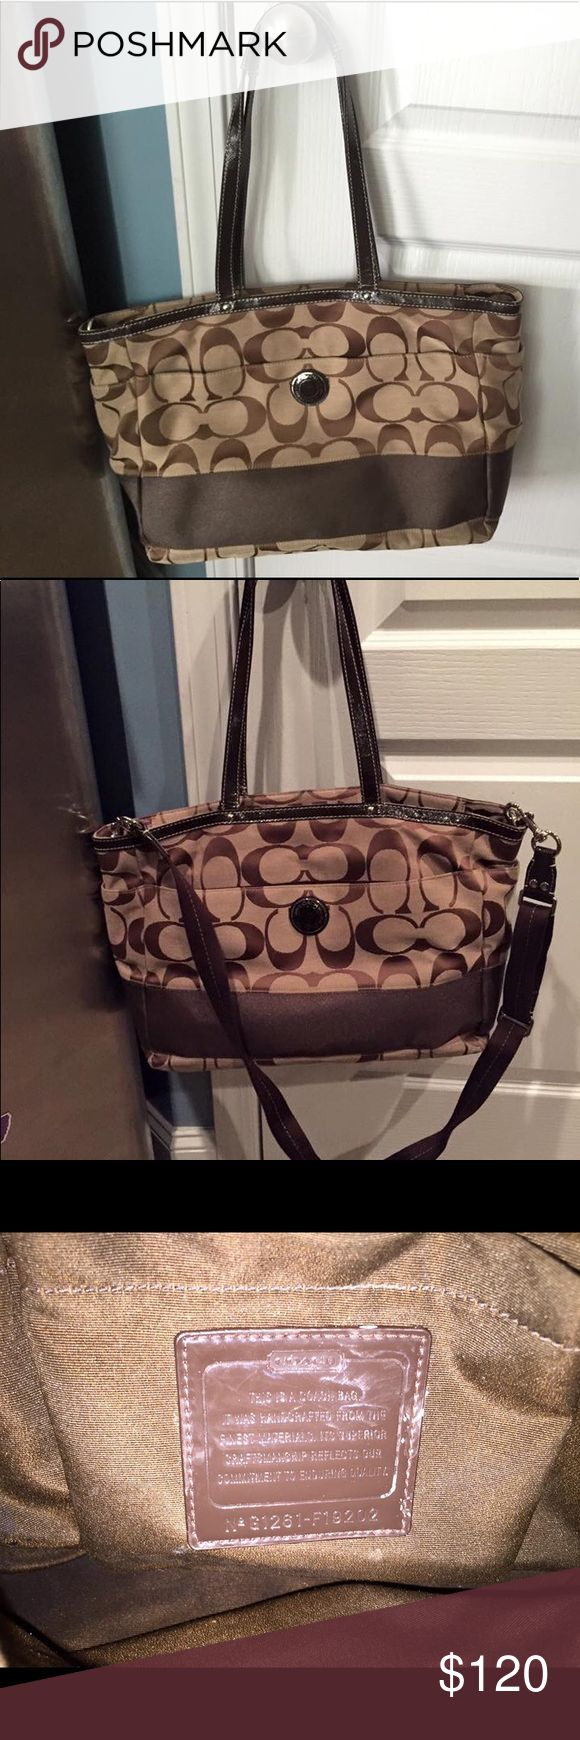 Coach diaper bag Very clean gently used Coach diaper bag - classic brown C logo. Roomy enough for anything and everything for baby plus your own purse items. Coach Bags Baby Bags